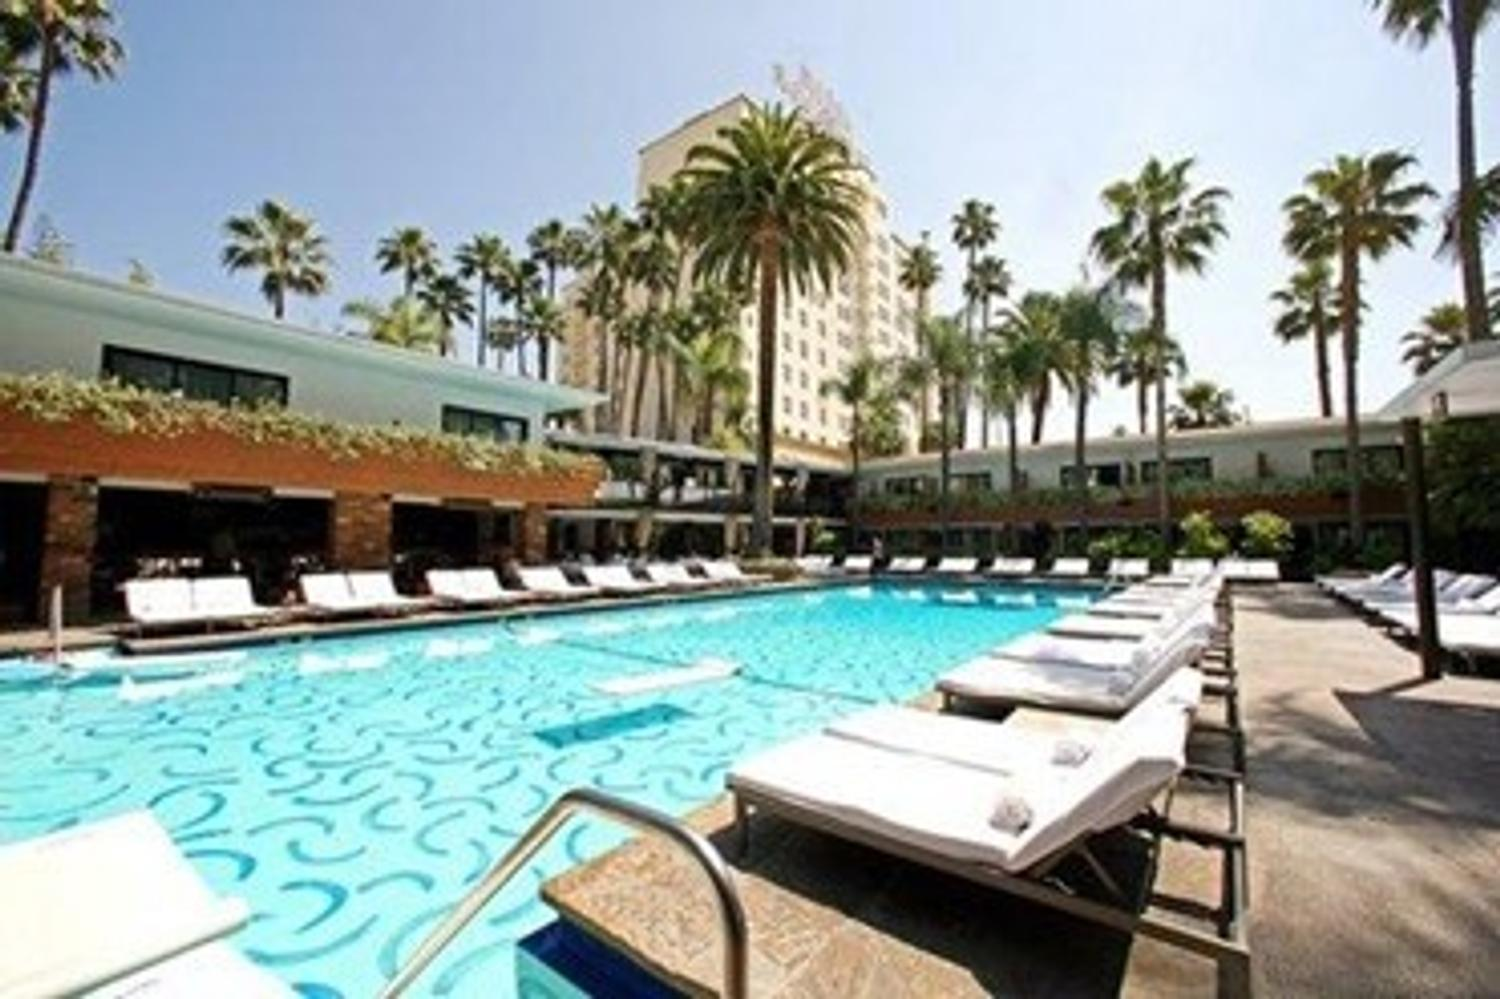 Iconic Hollywood Roosevelt With Its David Hockney Painted